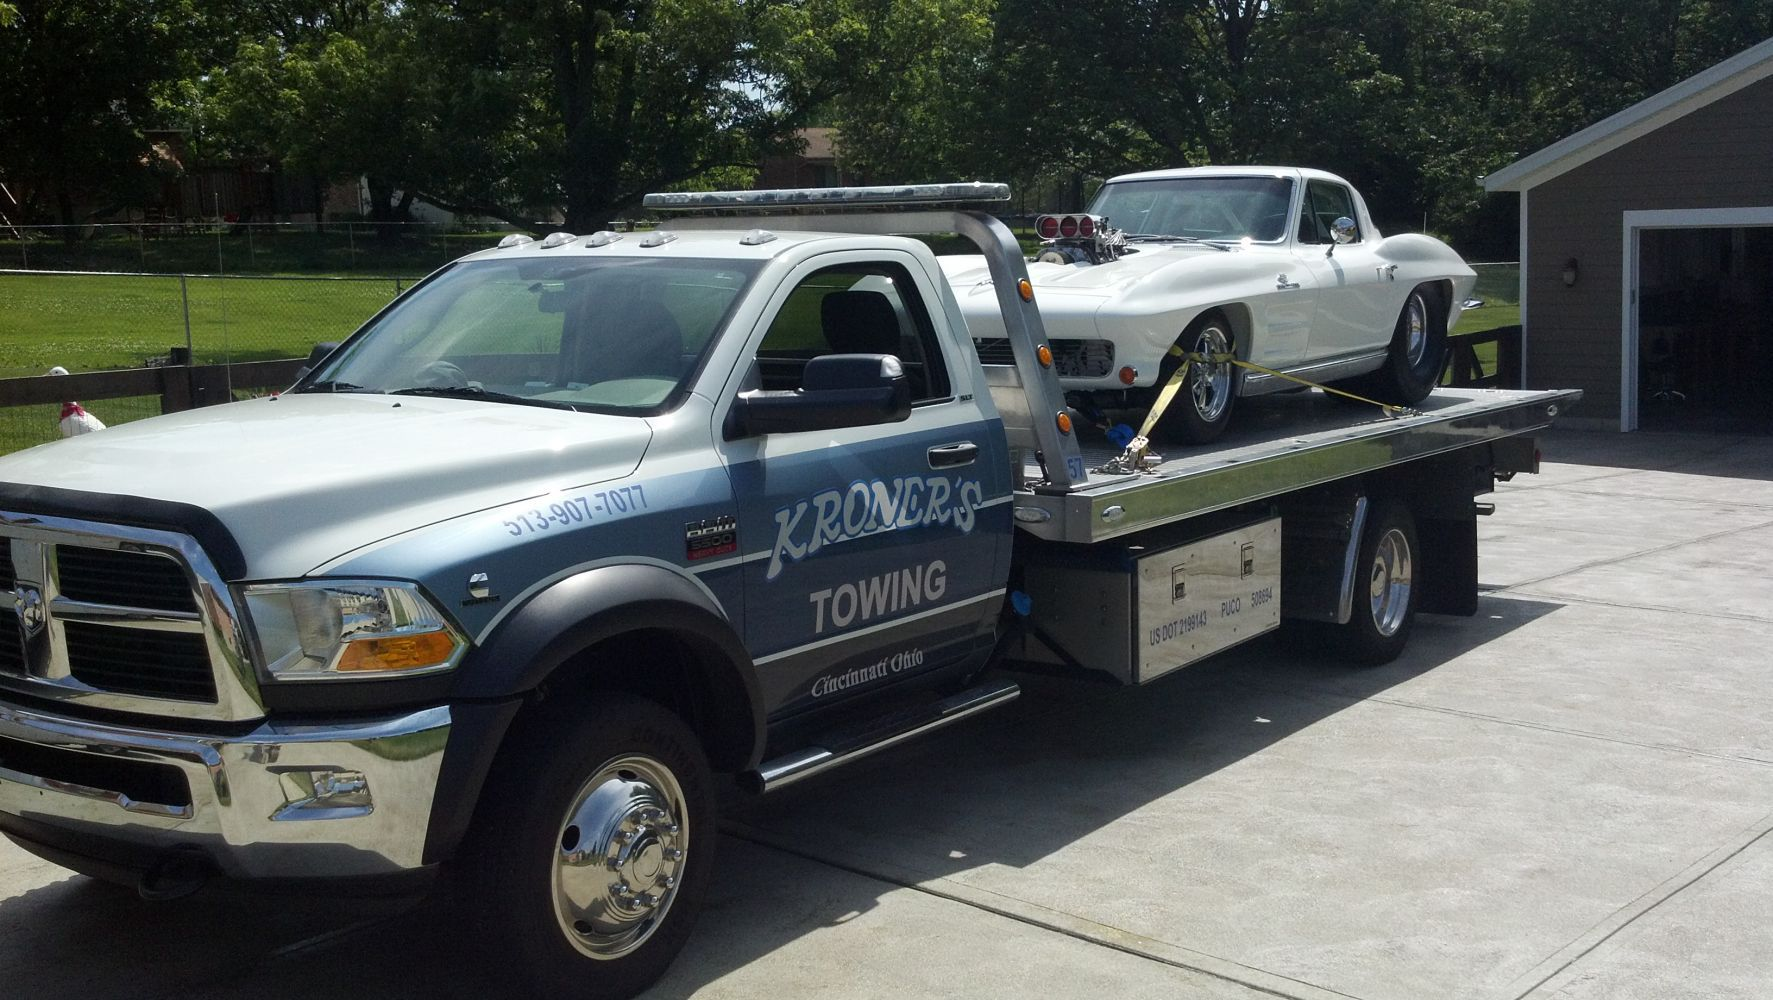 The truck used by our experts for roadside assistance in Cincinnati, OH